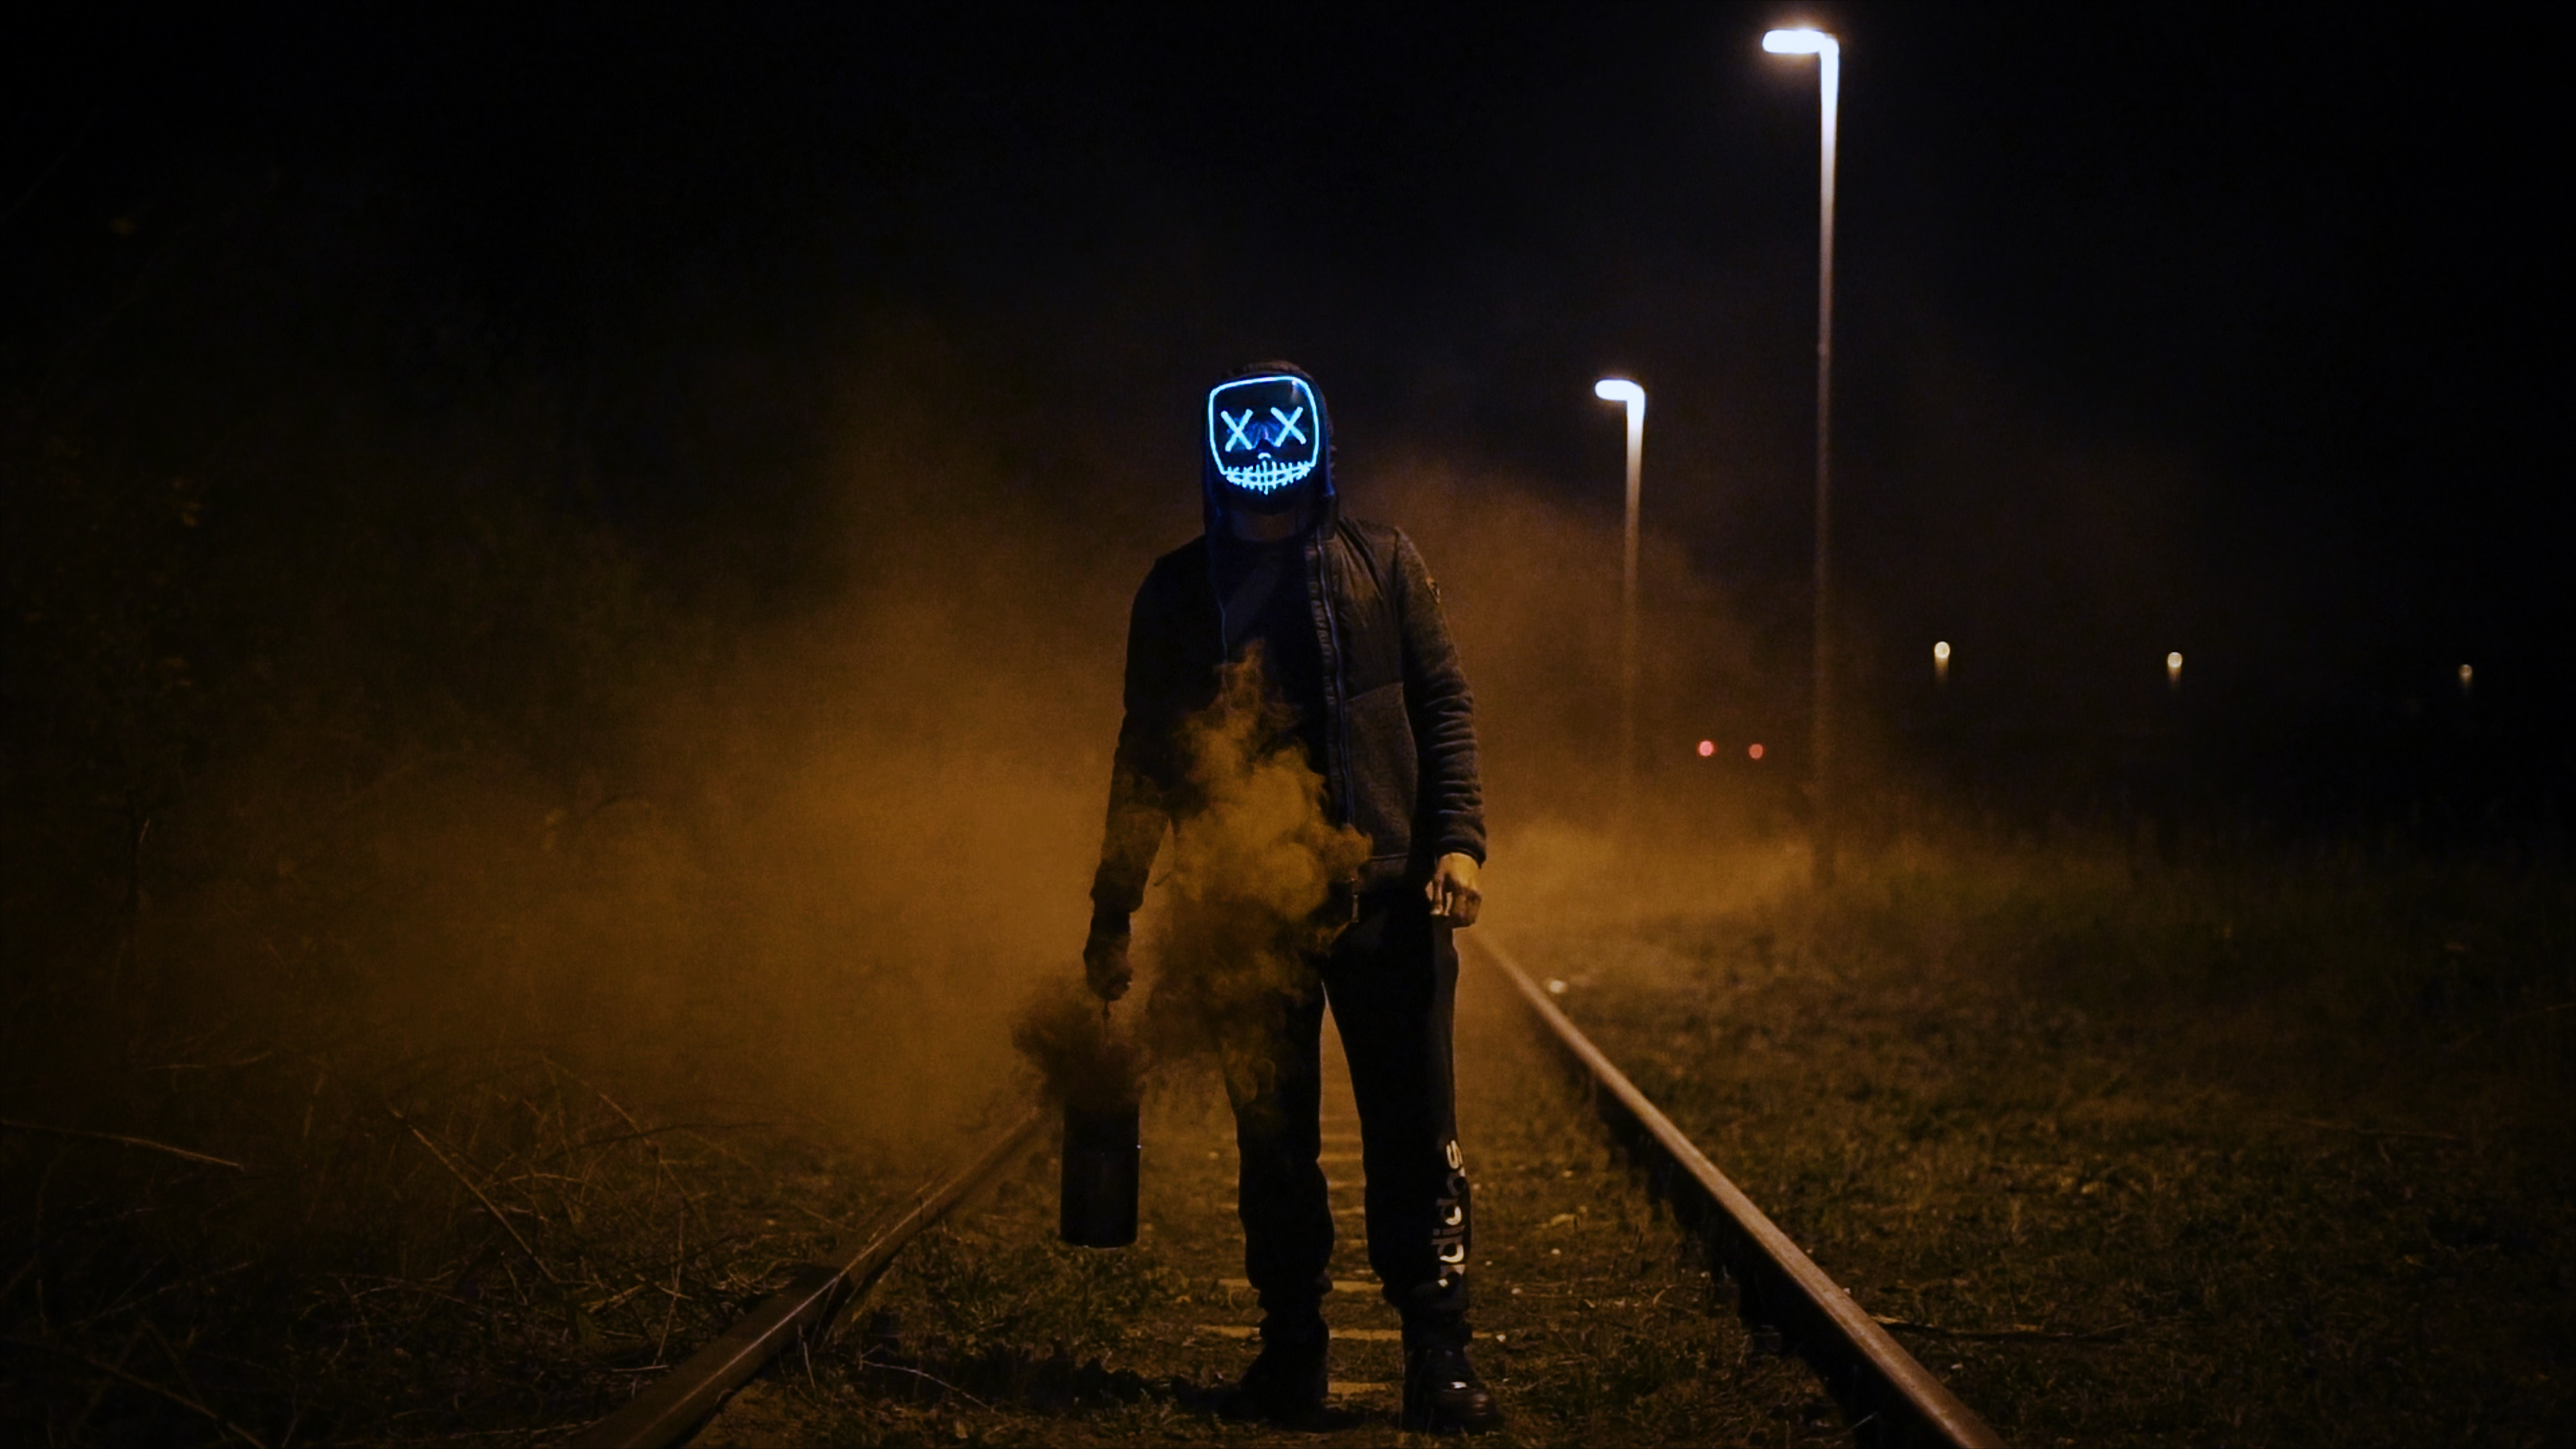 a horseman of the apocalypse -- figure walking through shadows and fog on train tracks